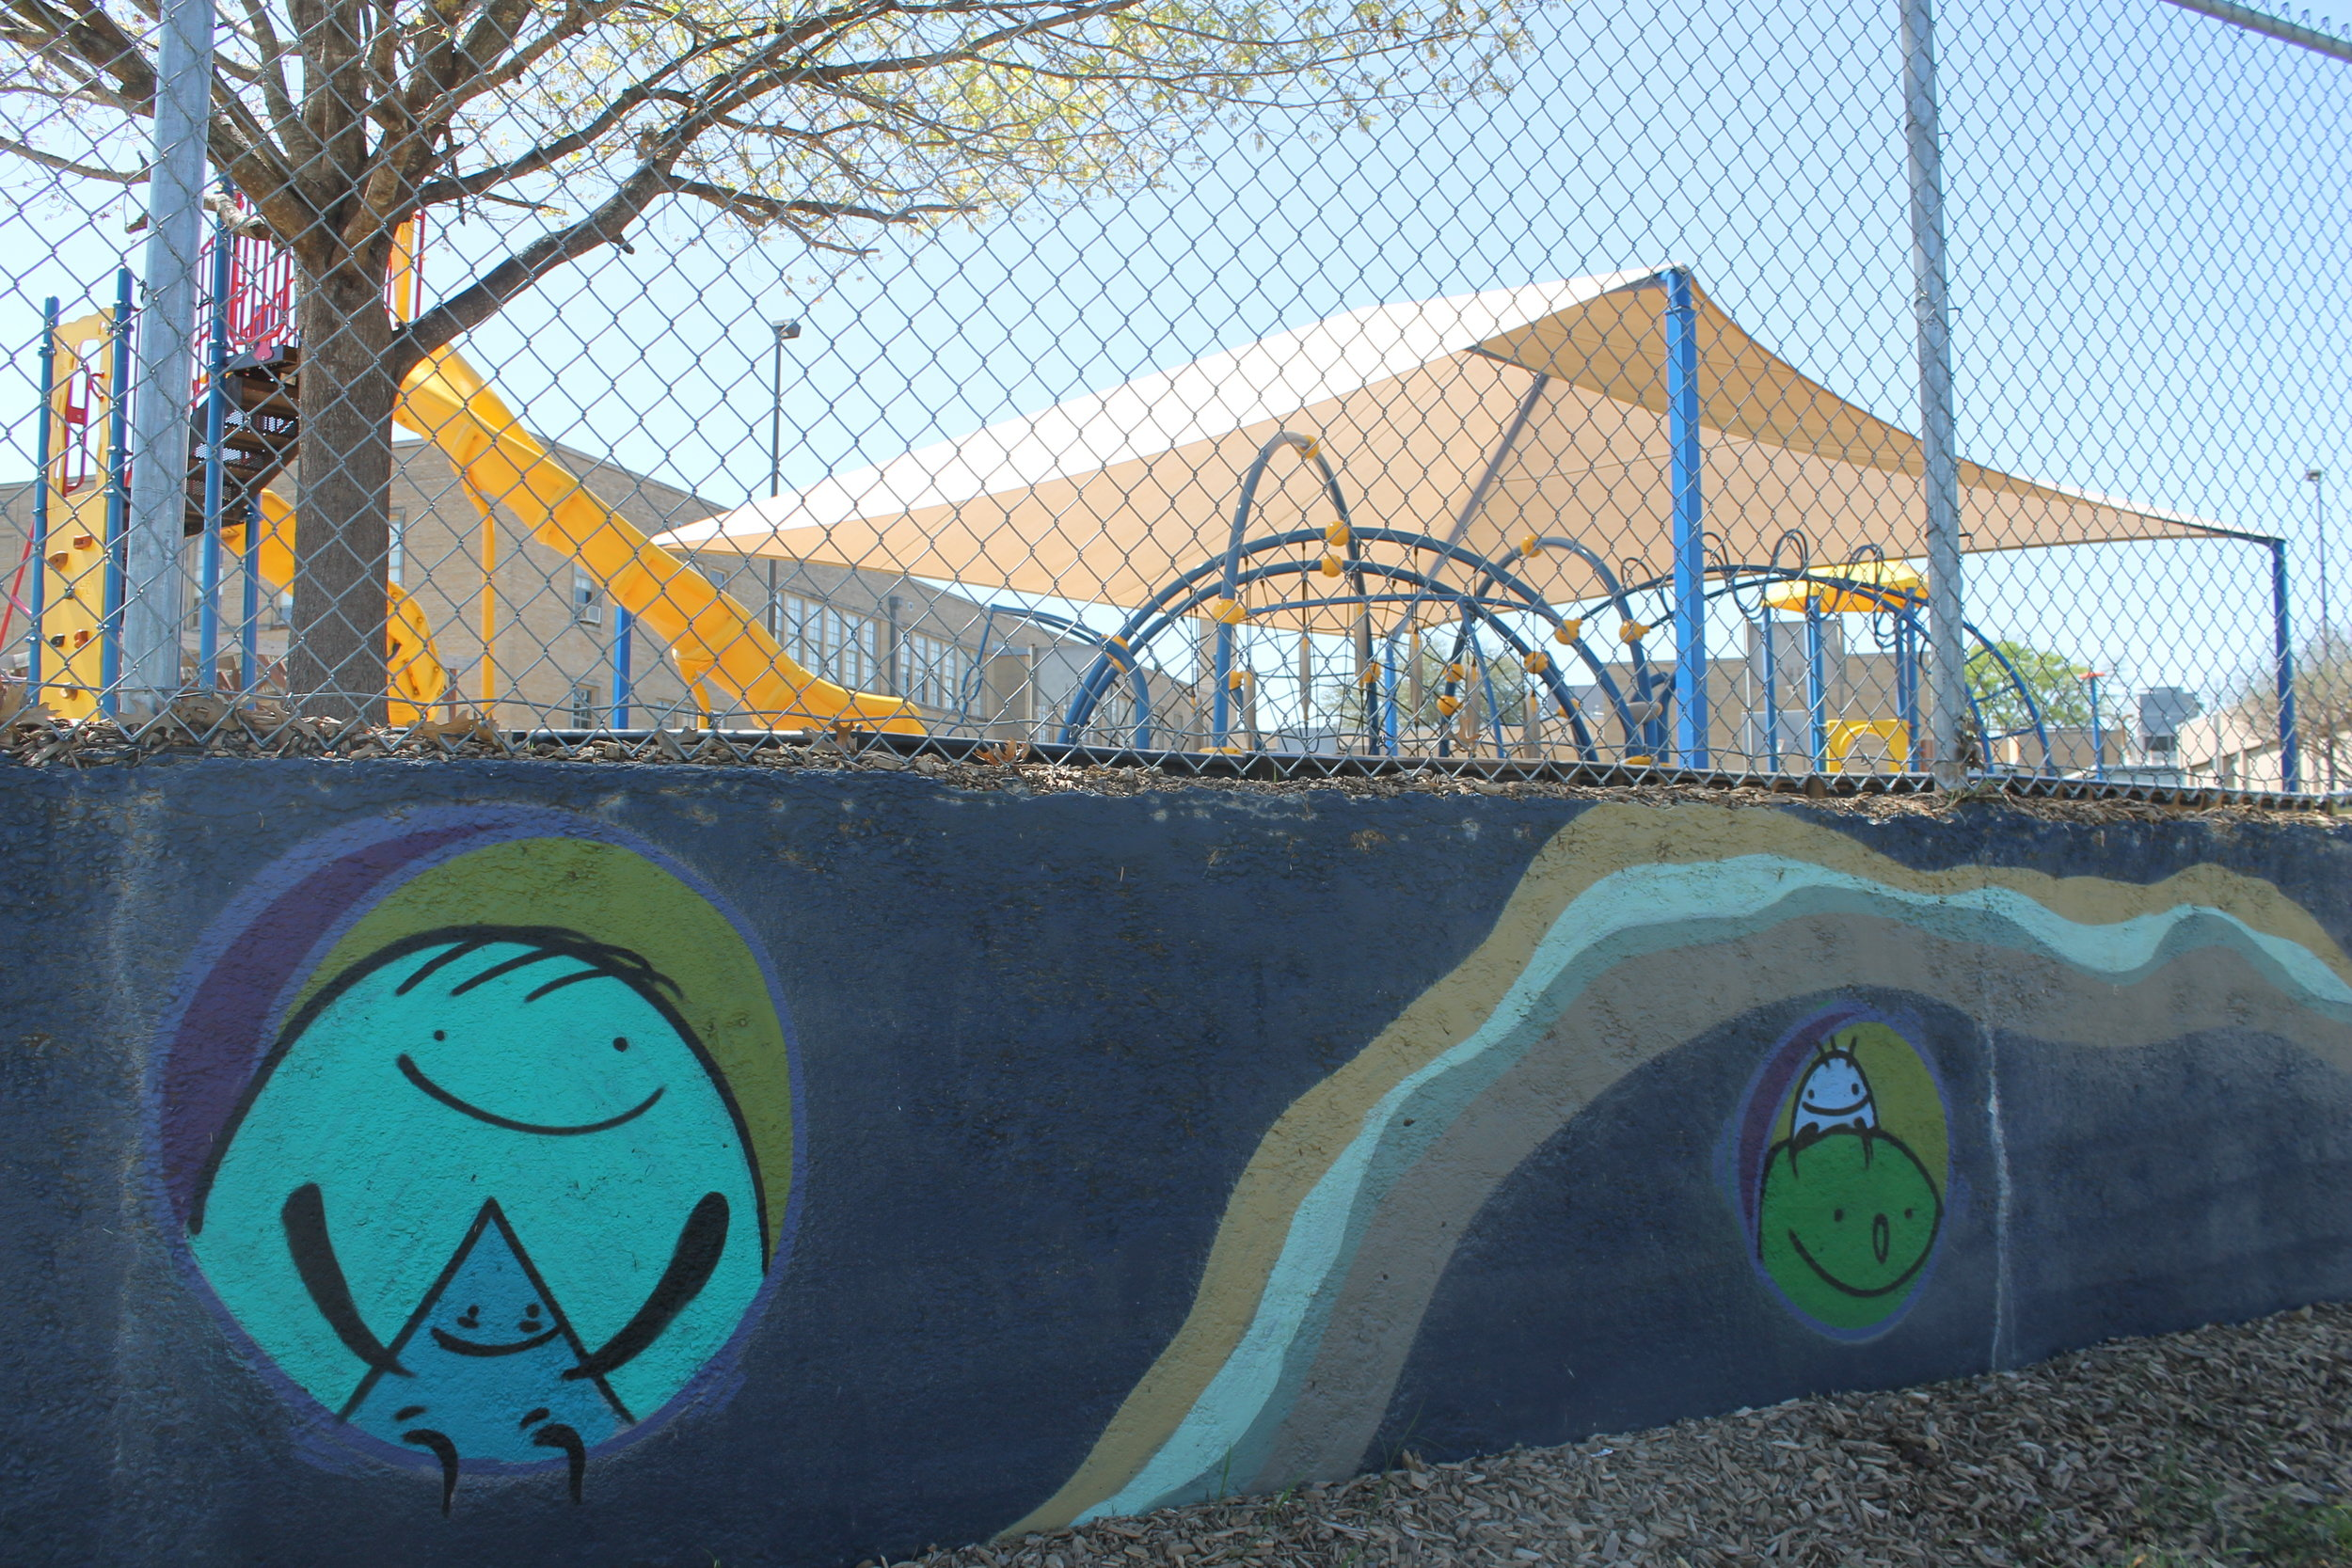 A fun, youthful mural adds a splash of fun color to Lakewood Elementary.